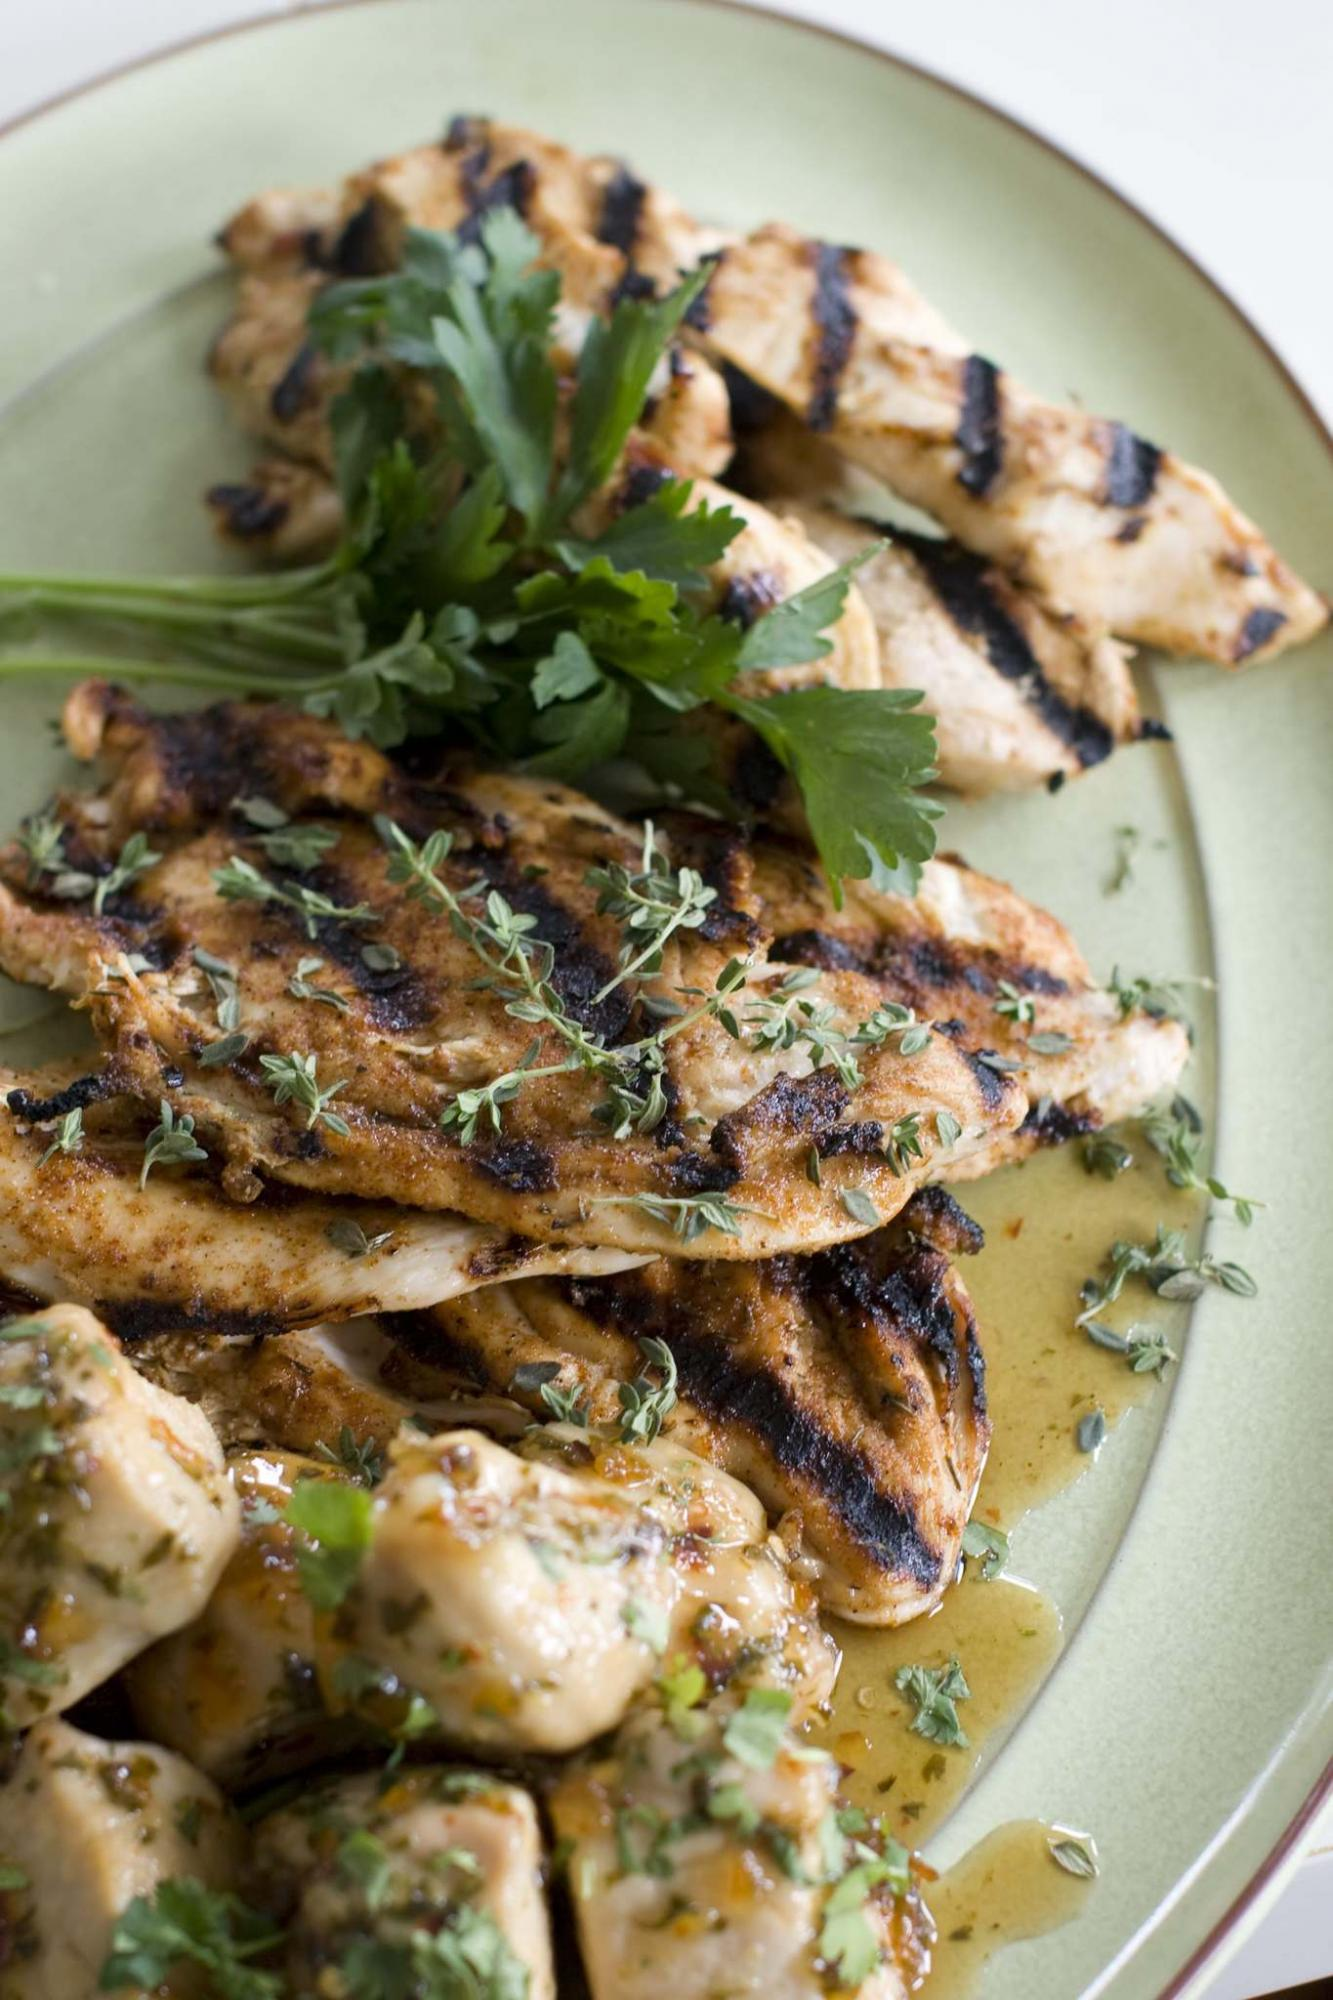 <p>Matthew Mead / The Associated Press files </p><p>Marinate chicken breasts in Italian salad dressing, salt and pepper to improve their taste.</p>